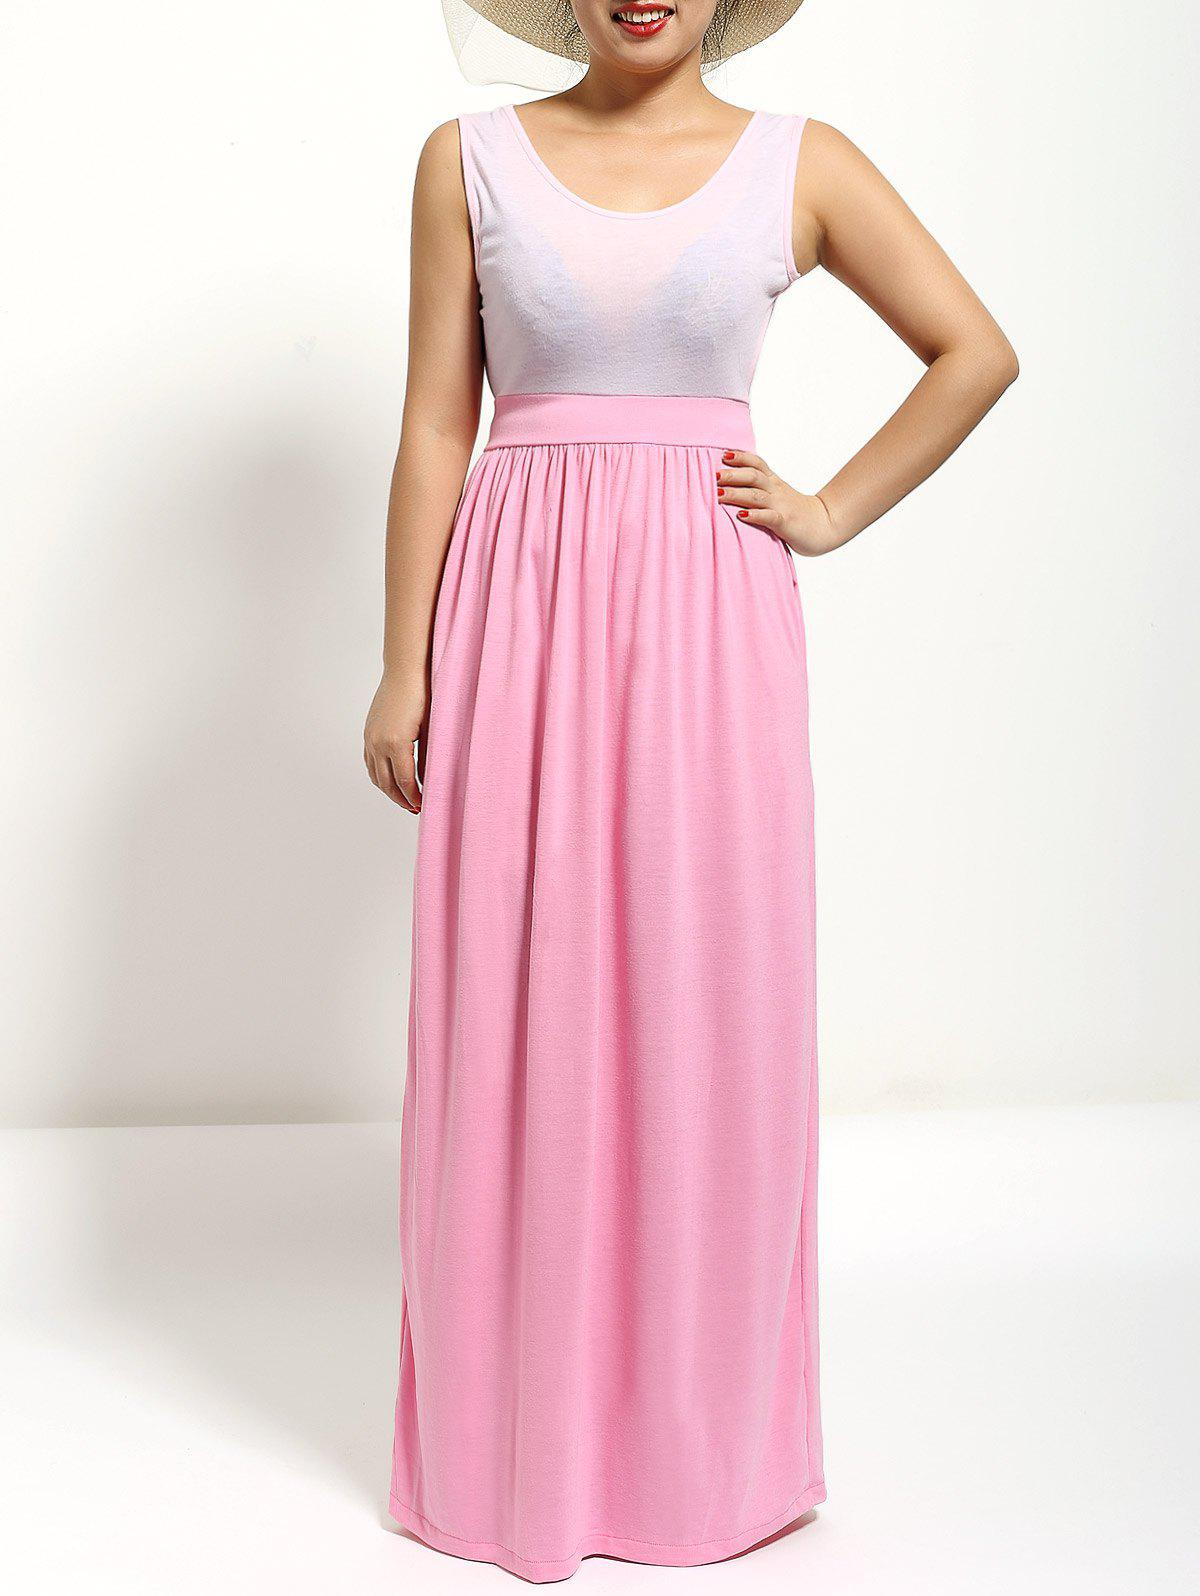 High Waist Scoop Neck Fit and Flare Dress - PINK XL